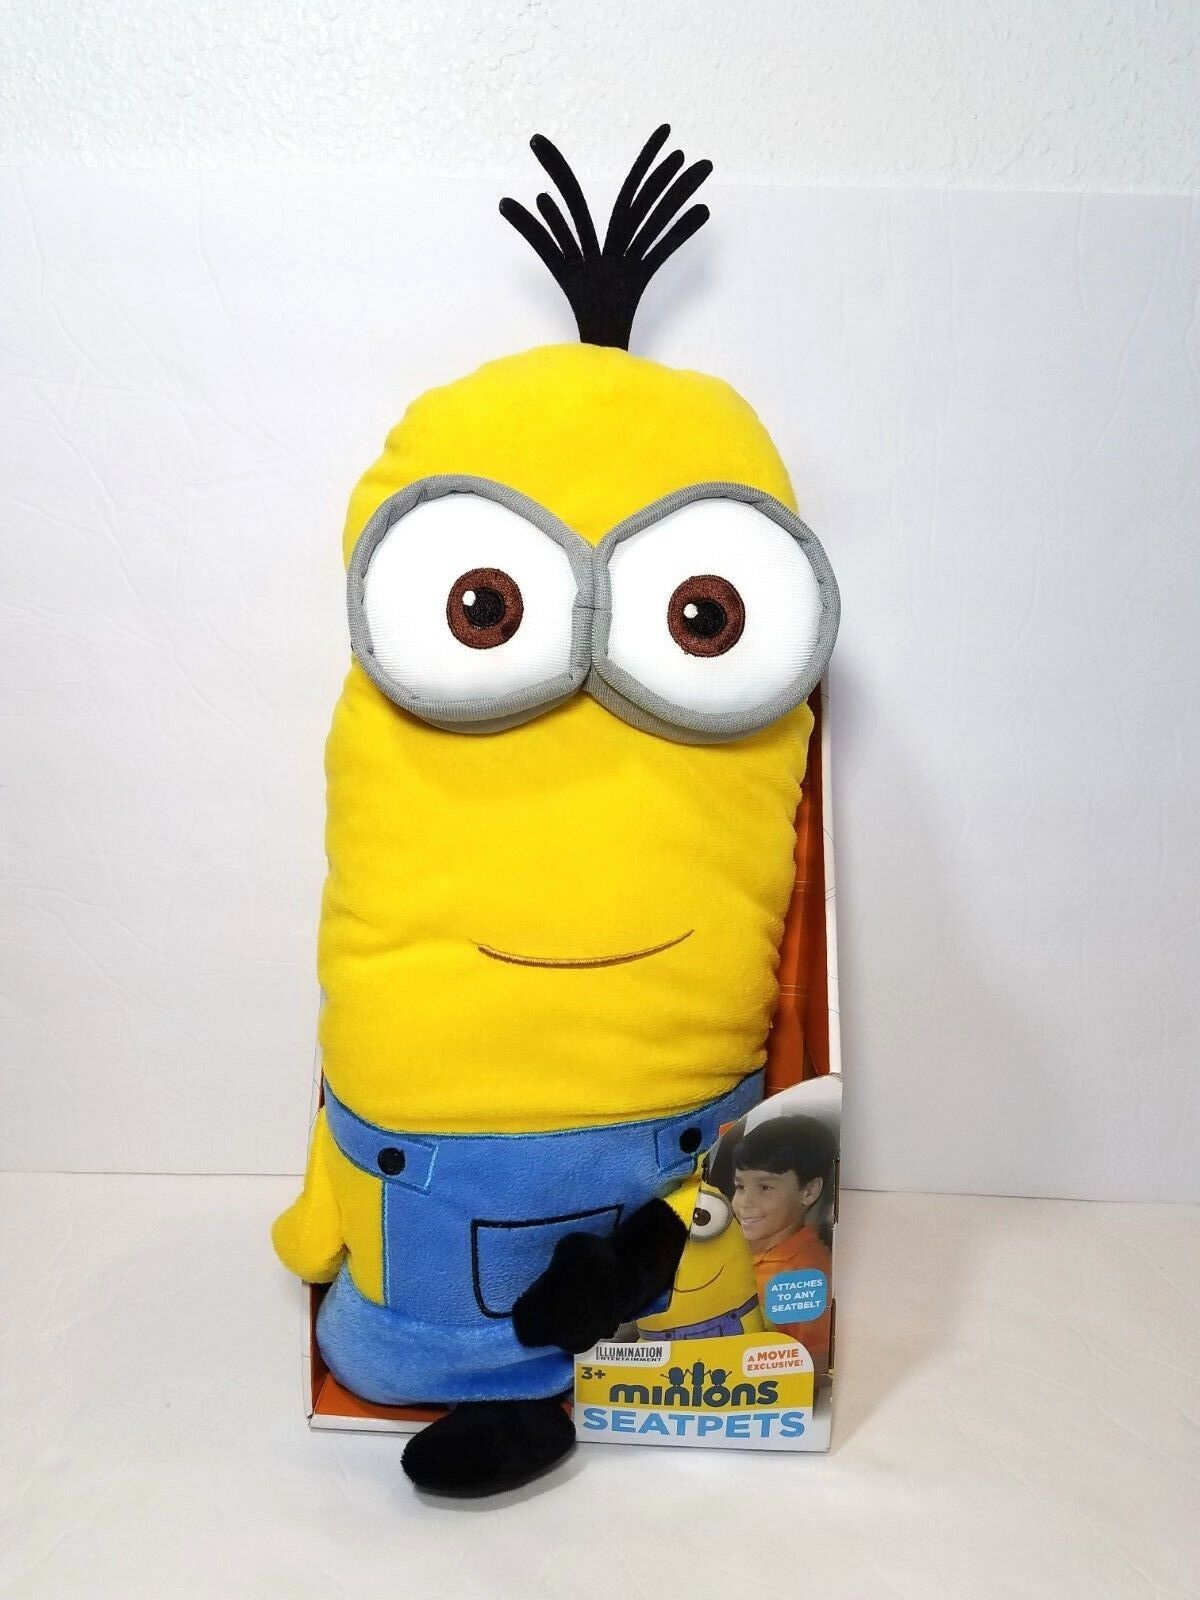 Nuovo Minions 17  SeatPets SeatPets SeatPets Plush Stuffed Animal giocattolo Attach Seat belt Gift for Kid a6cc4e